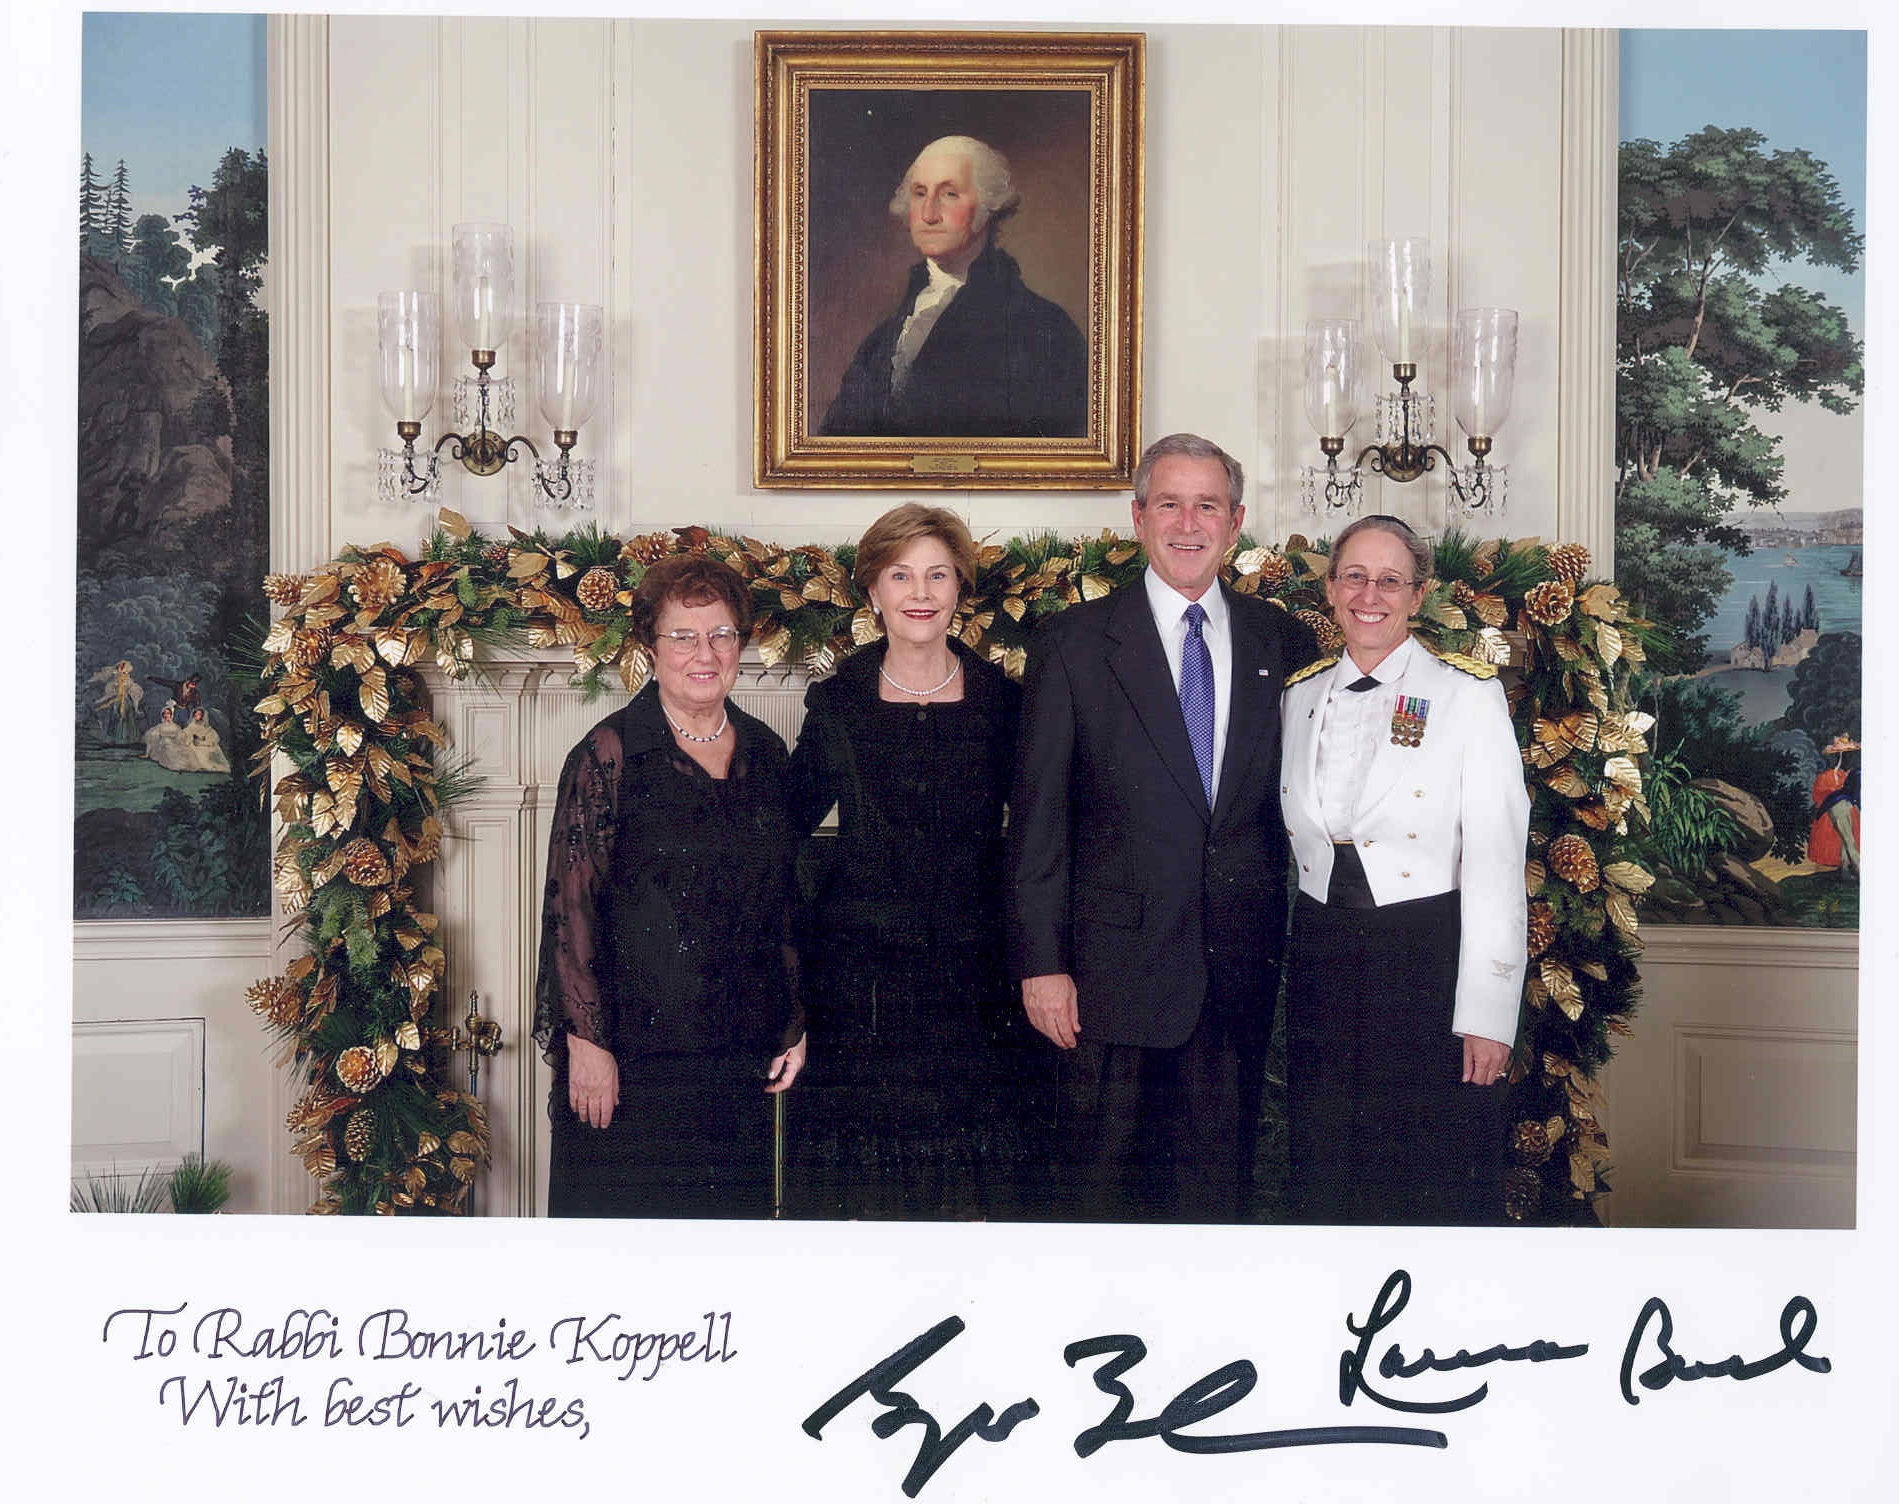 Rabbi Bonnie Koppell At The White House